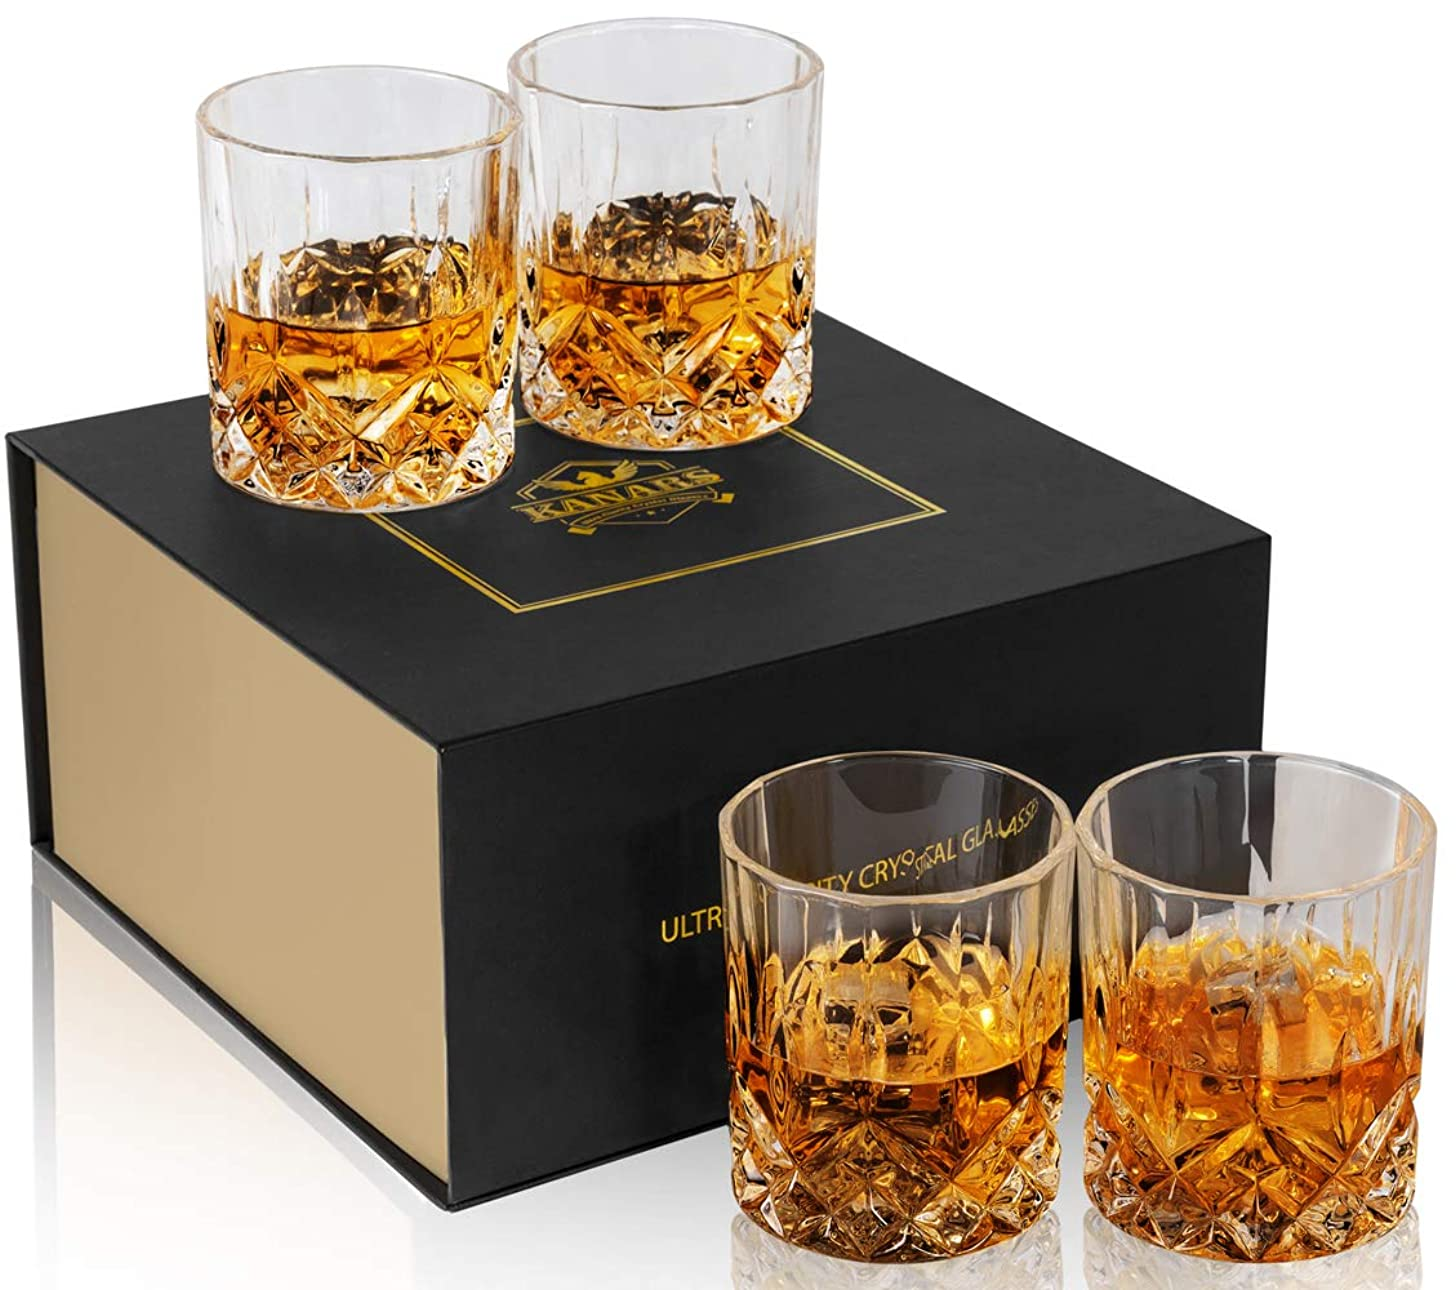 KANARS Double Old Fashioned Whiskey Glasses With Luxury Gift Box - Rocks Barware For Scotch, Bourbon, Liquor and Cocktail Drinks - Set of 4